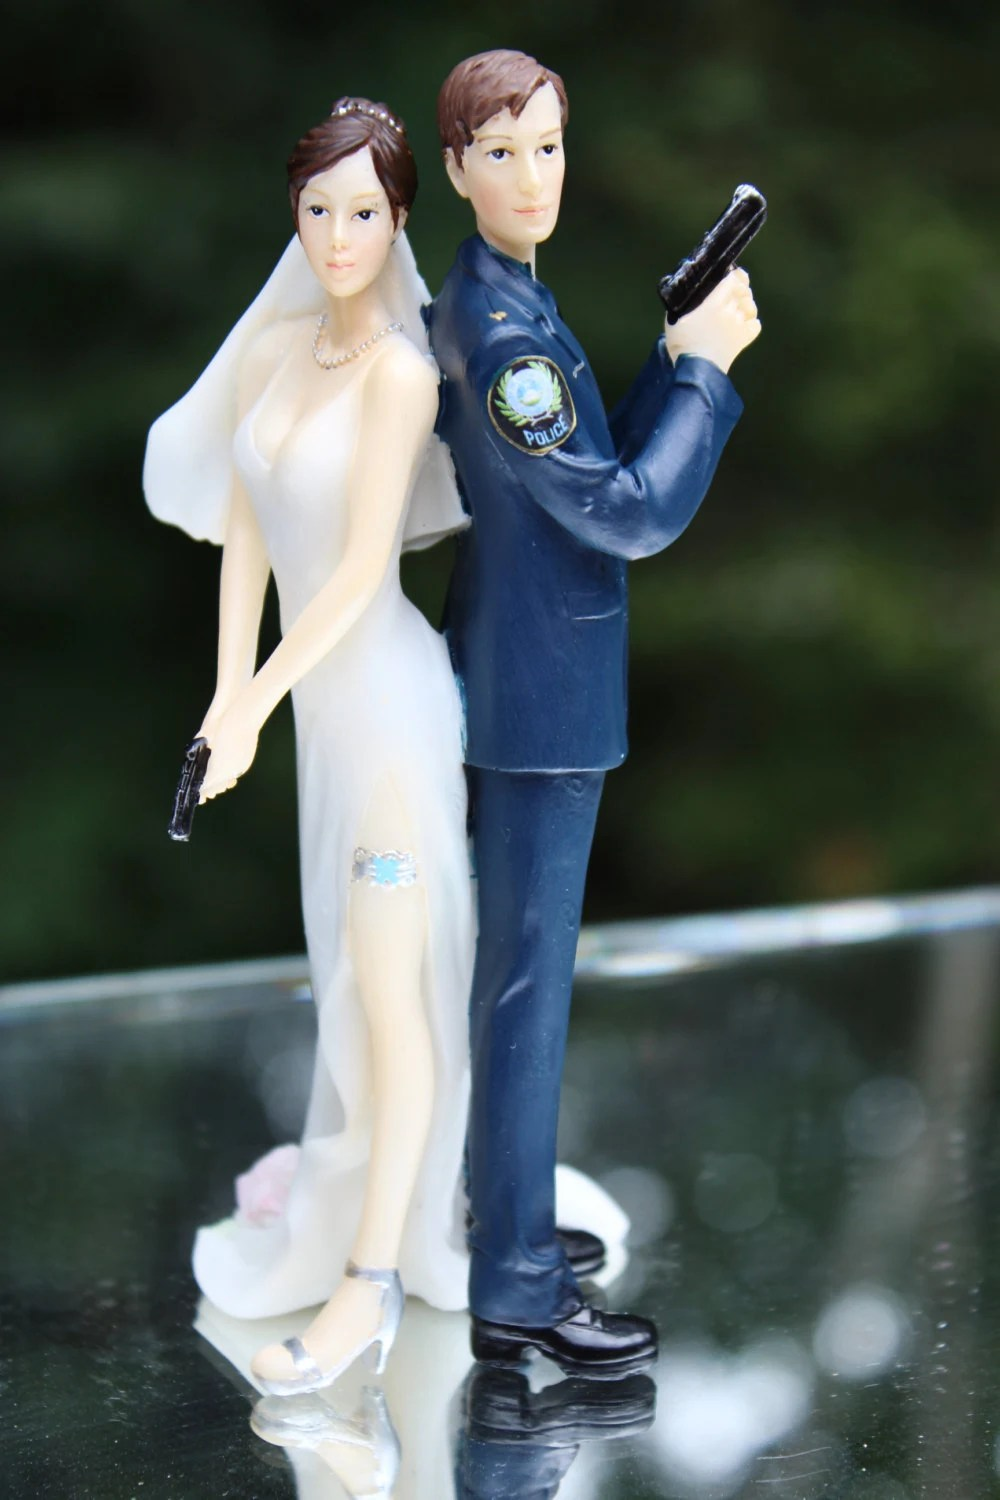 Police Officer Bride Groom Guns Wedding Cake Topper law